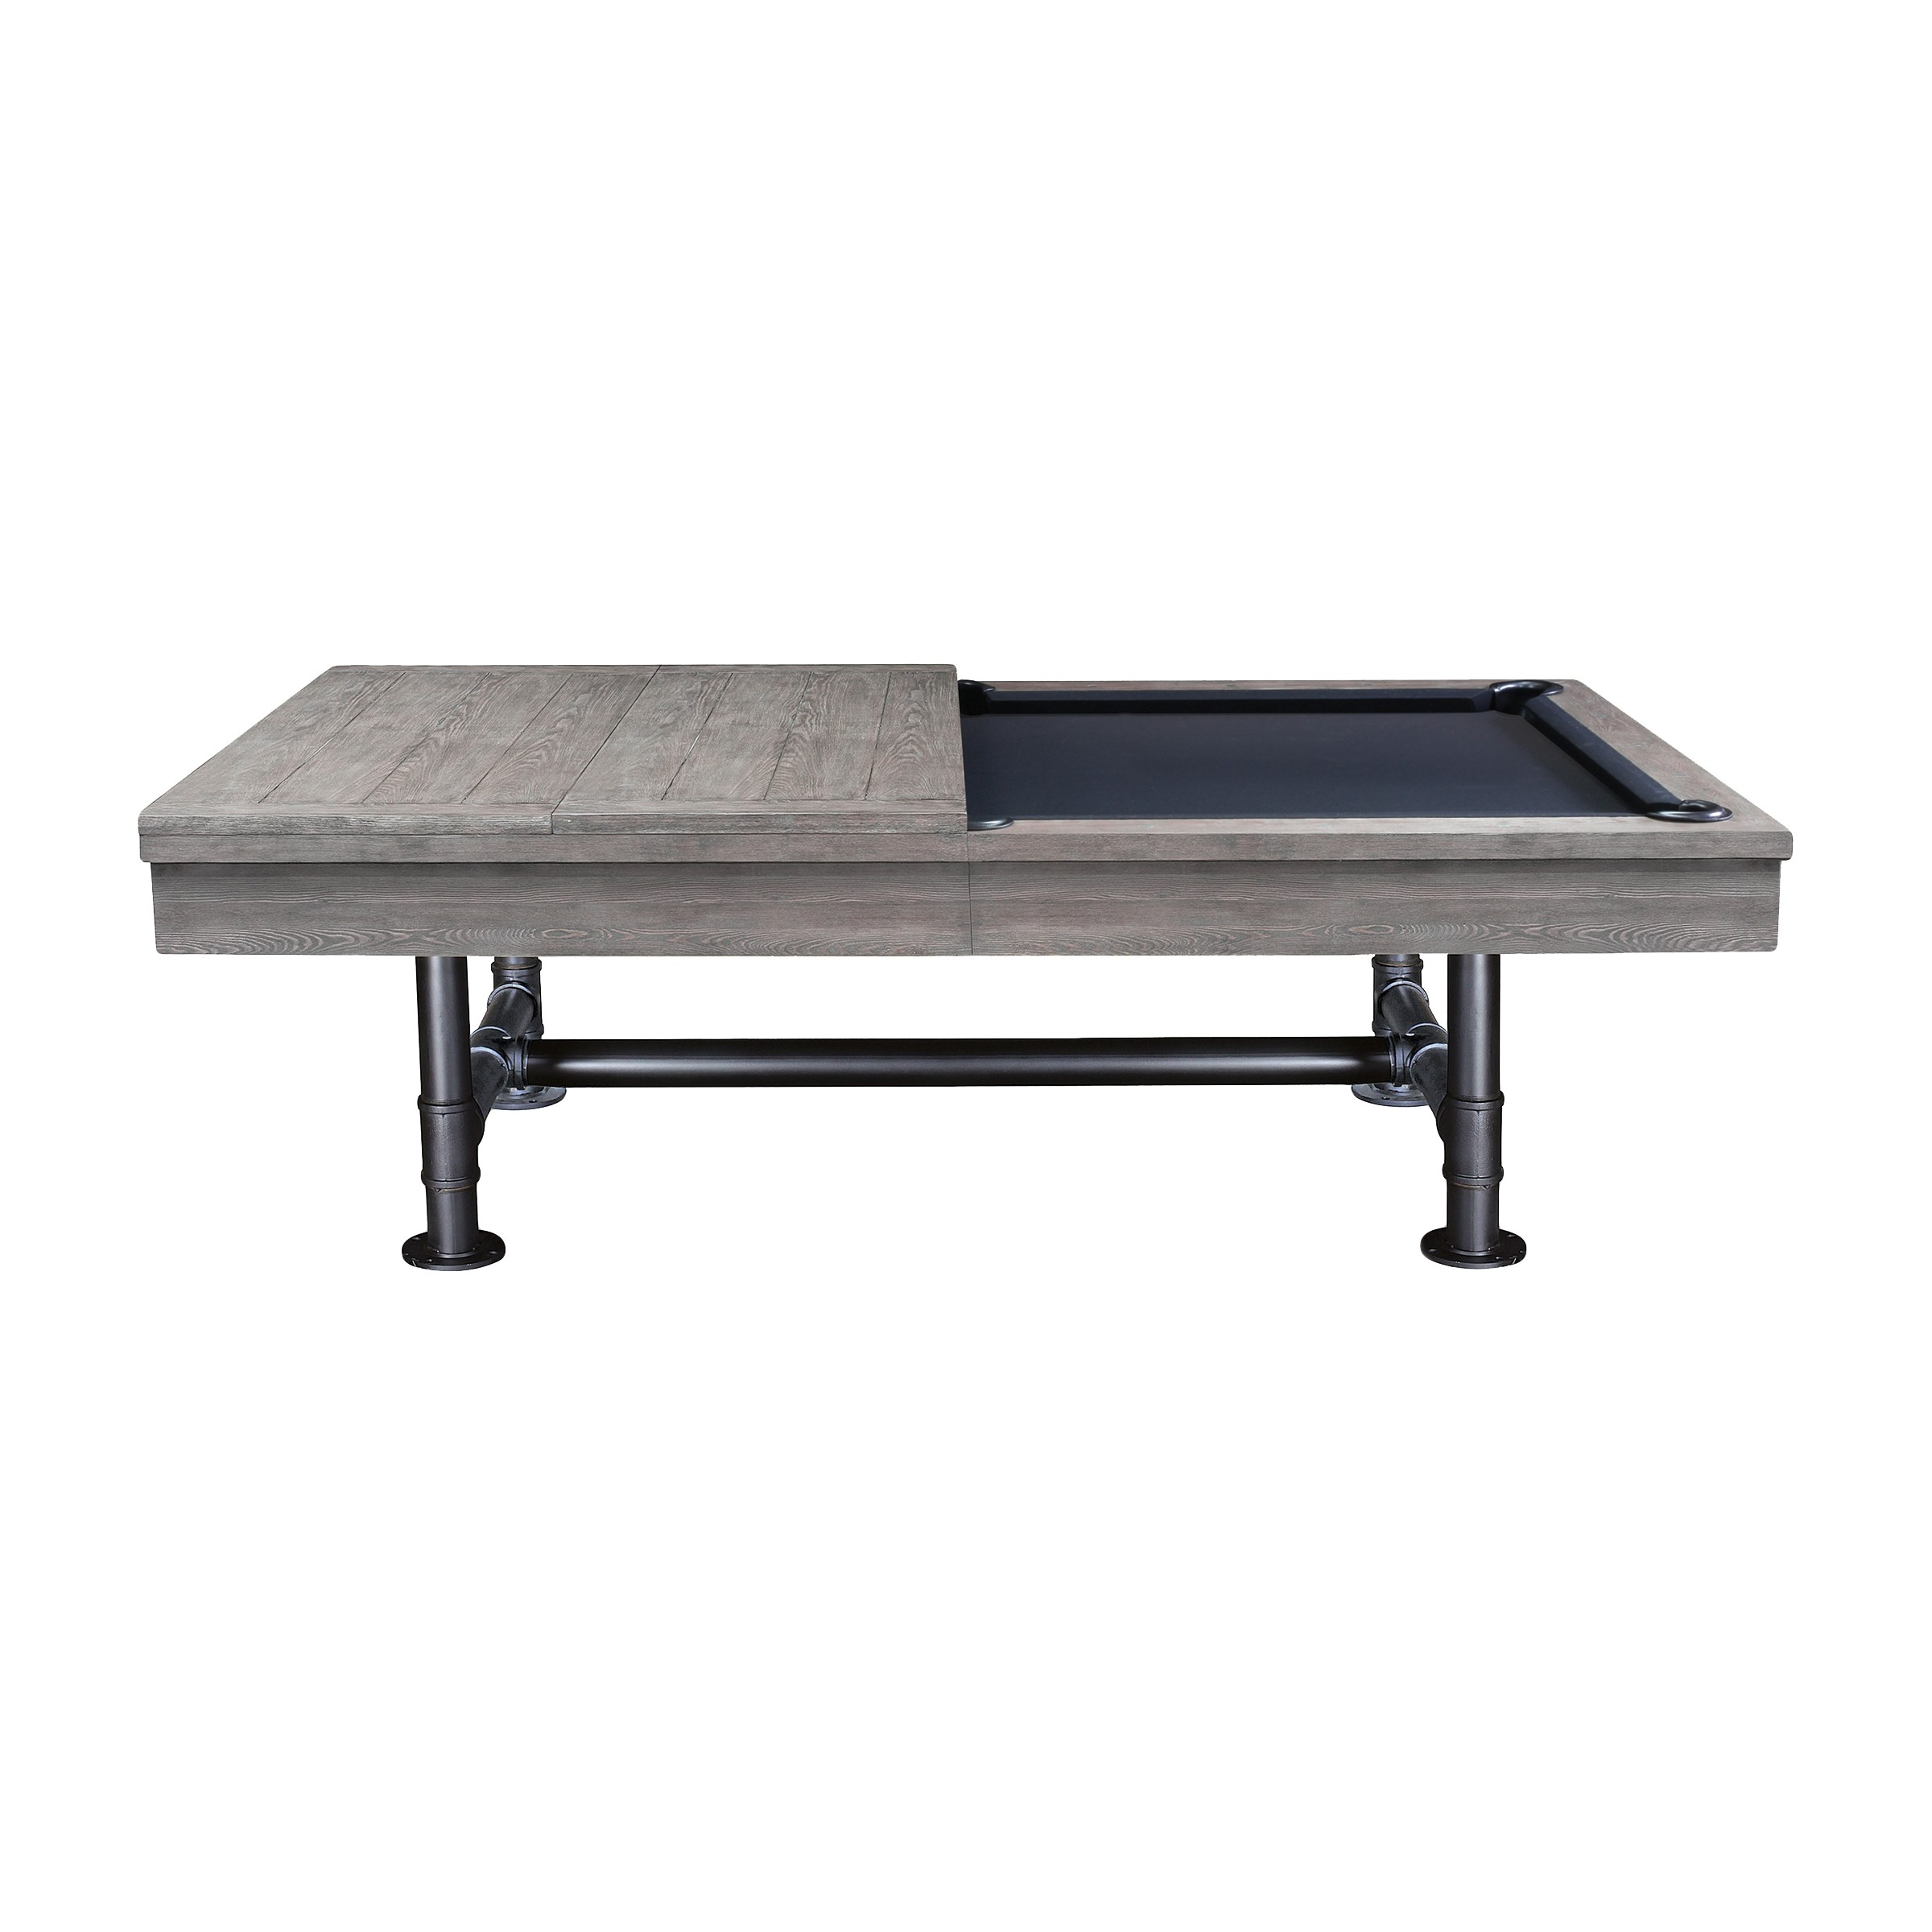 Imperial The Bedford 8Ft With Dining Top